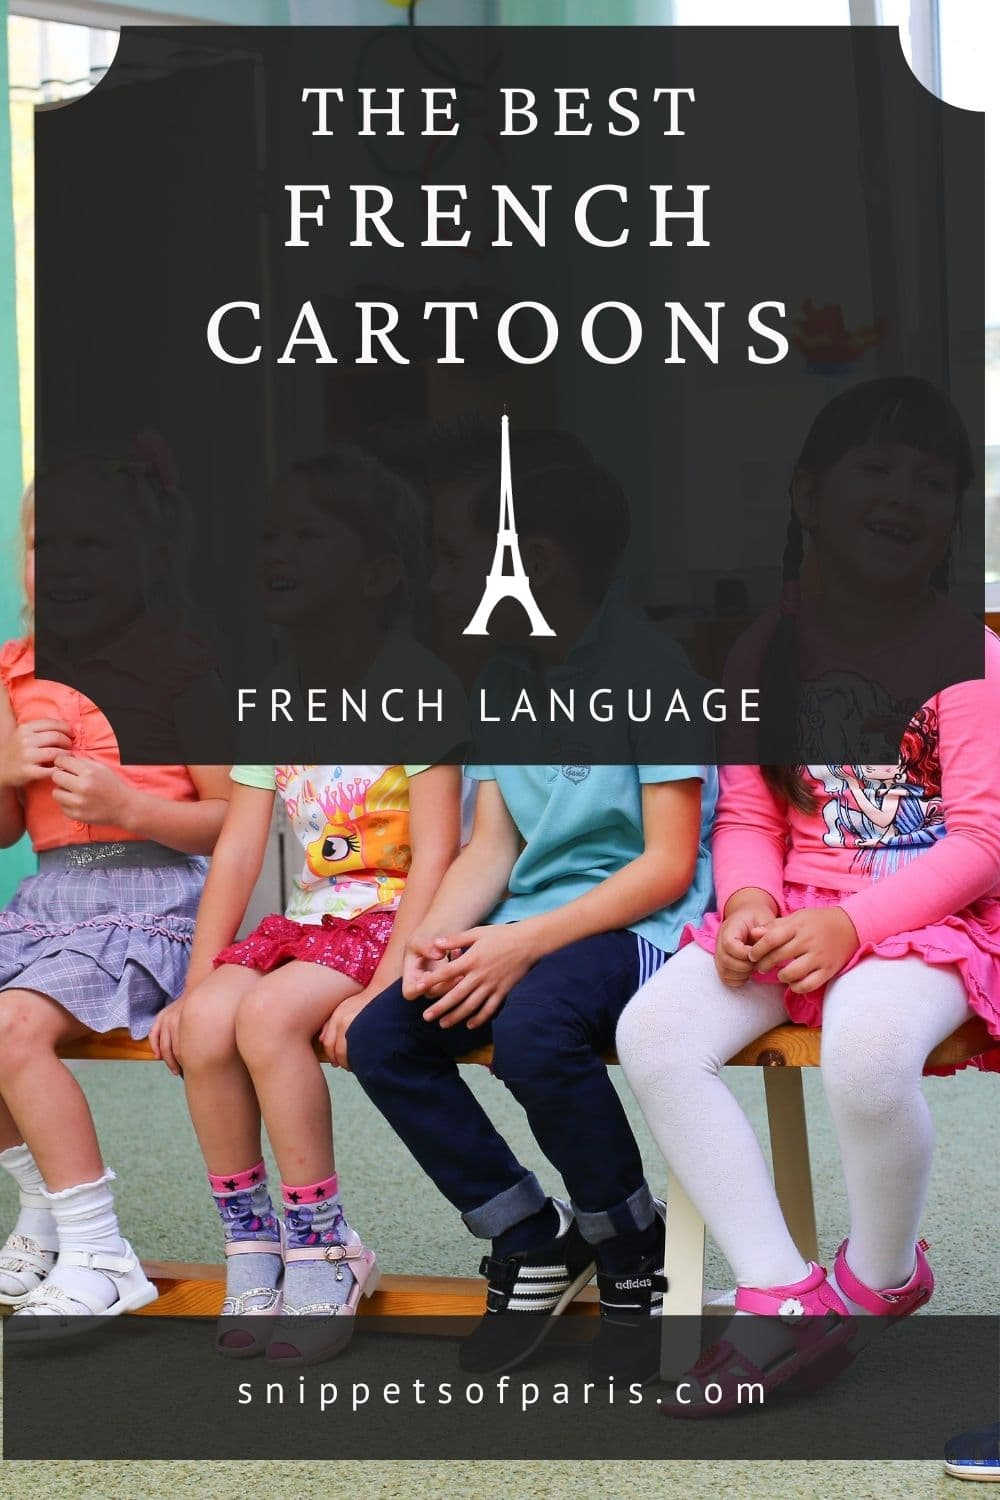 11 French cartoons to learn French (and entertain)